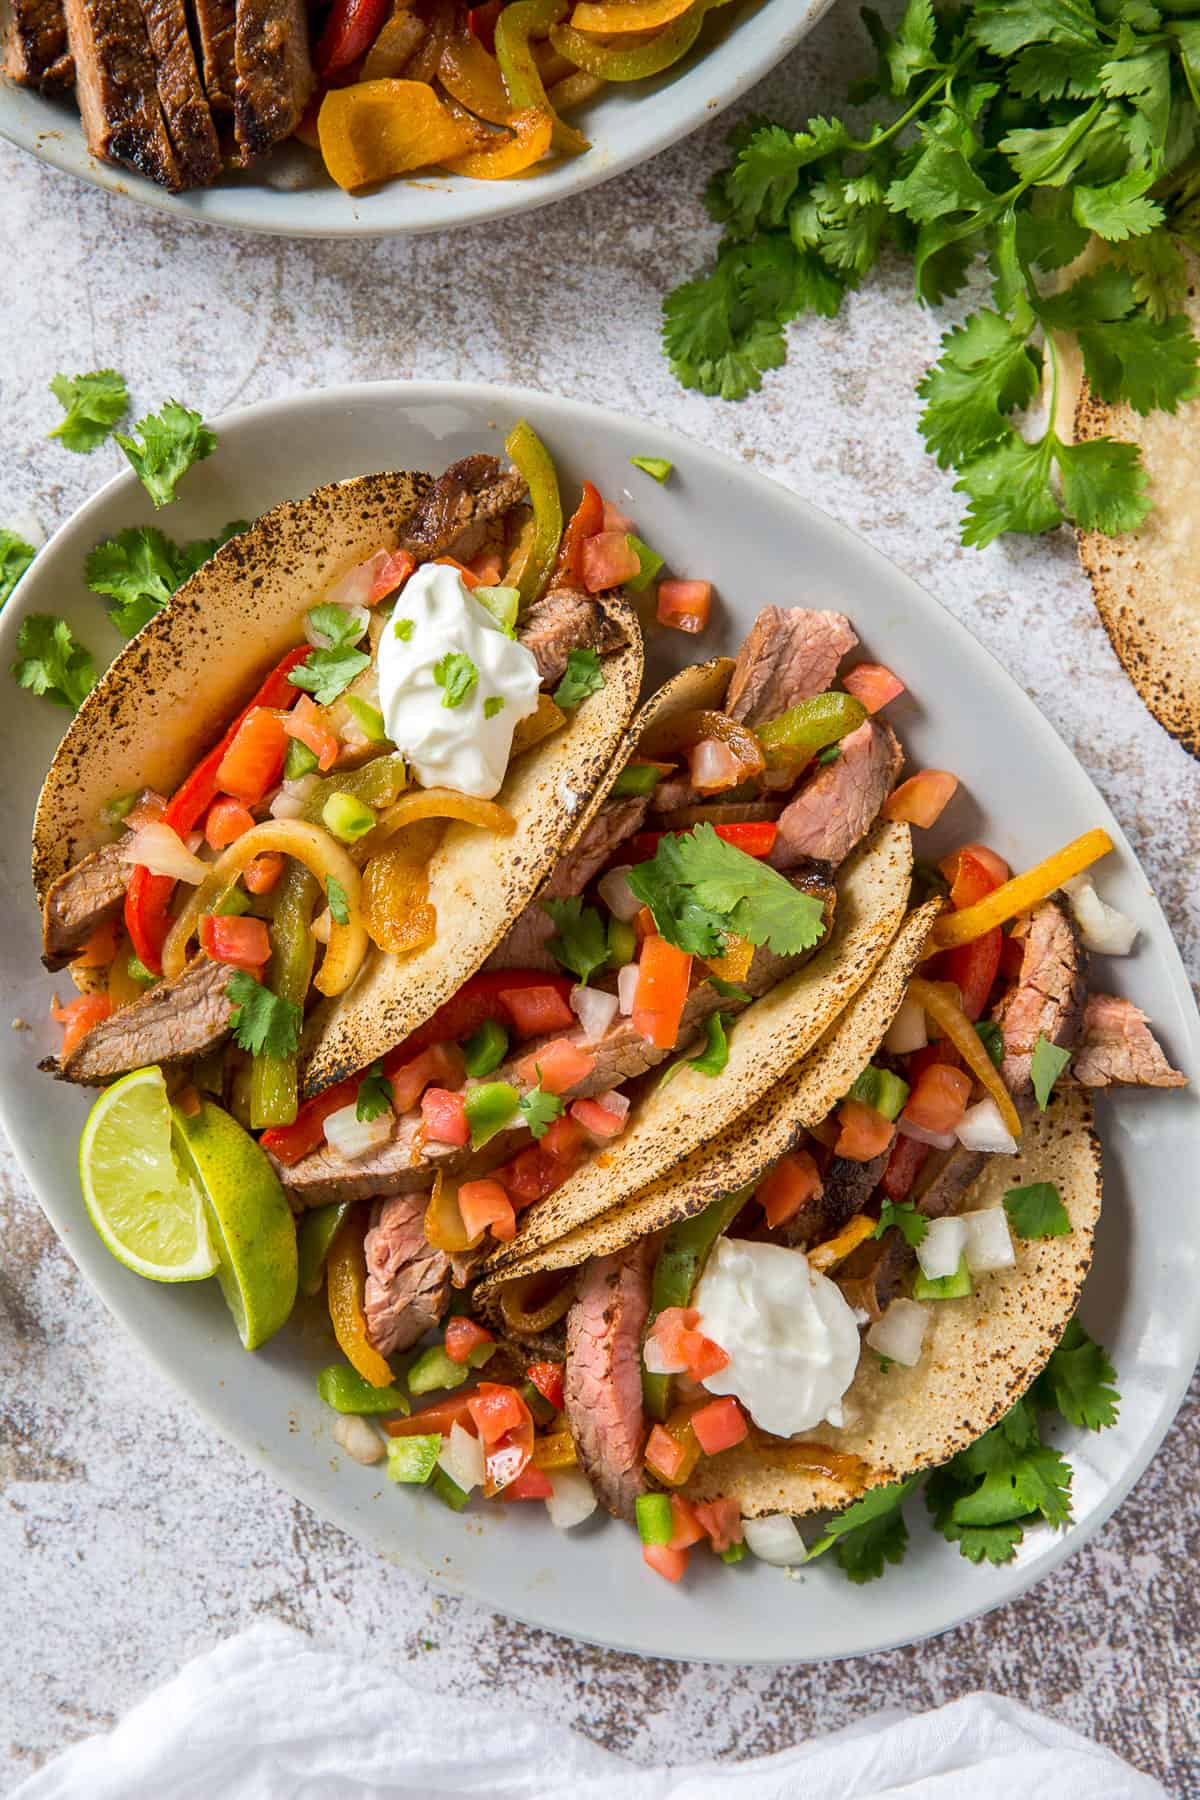 A platter full of tortillas stuffed with steak and vegetables.